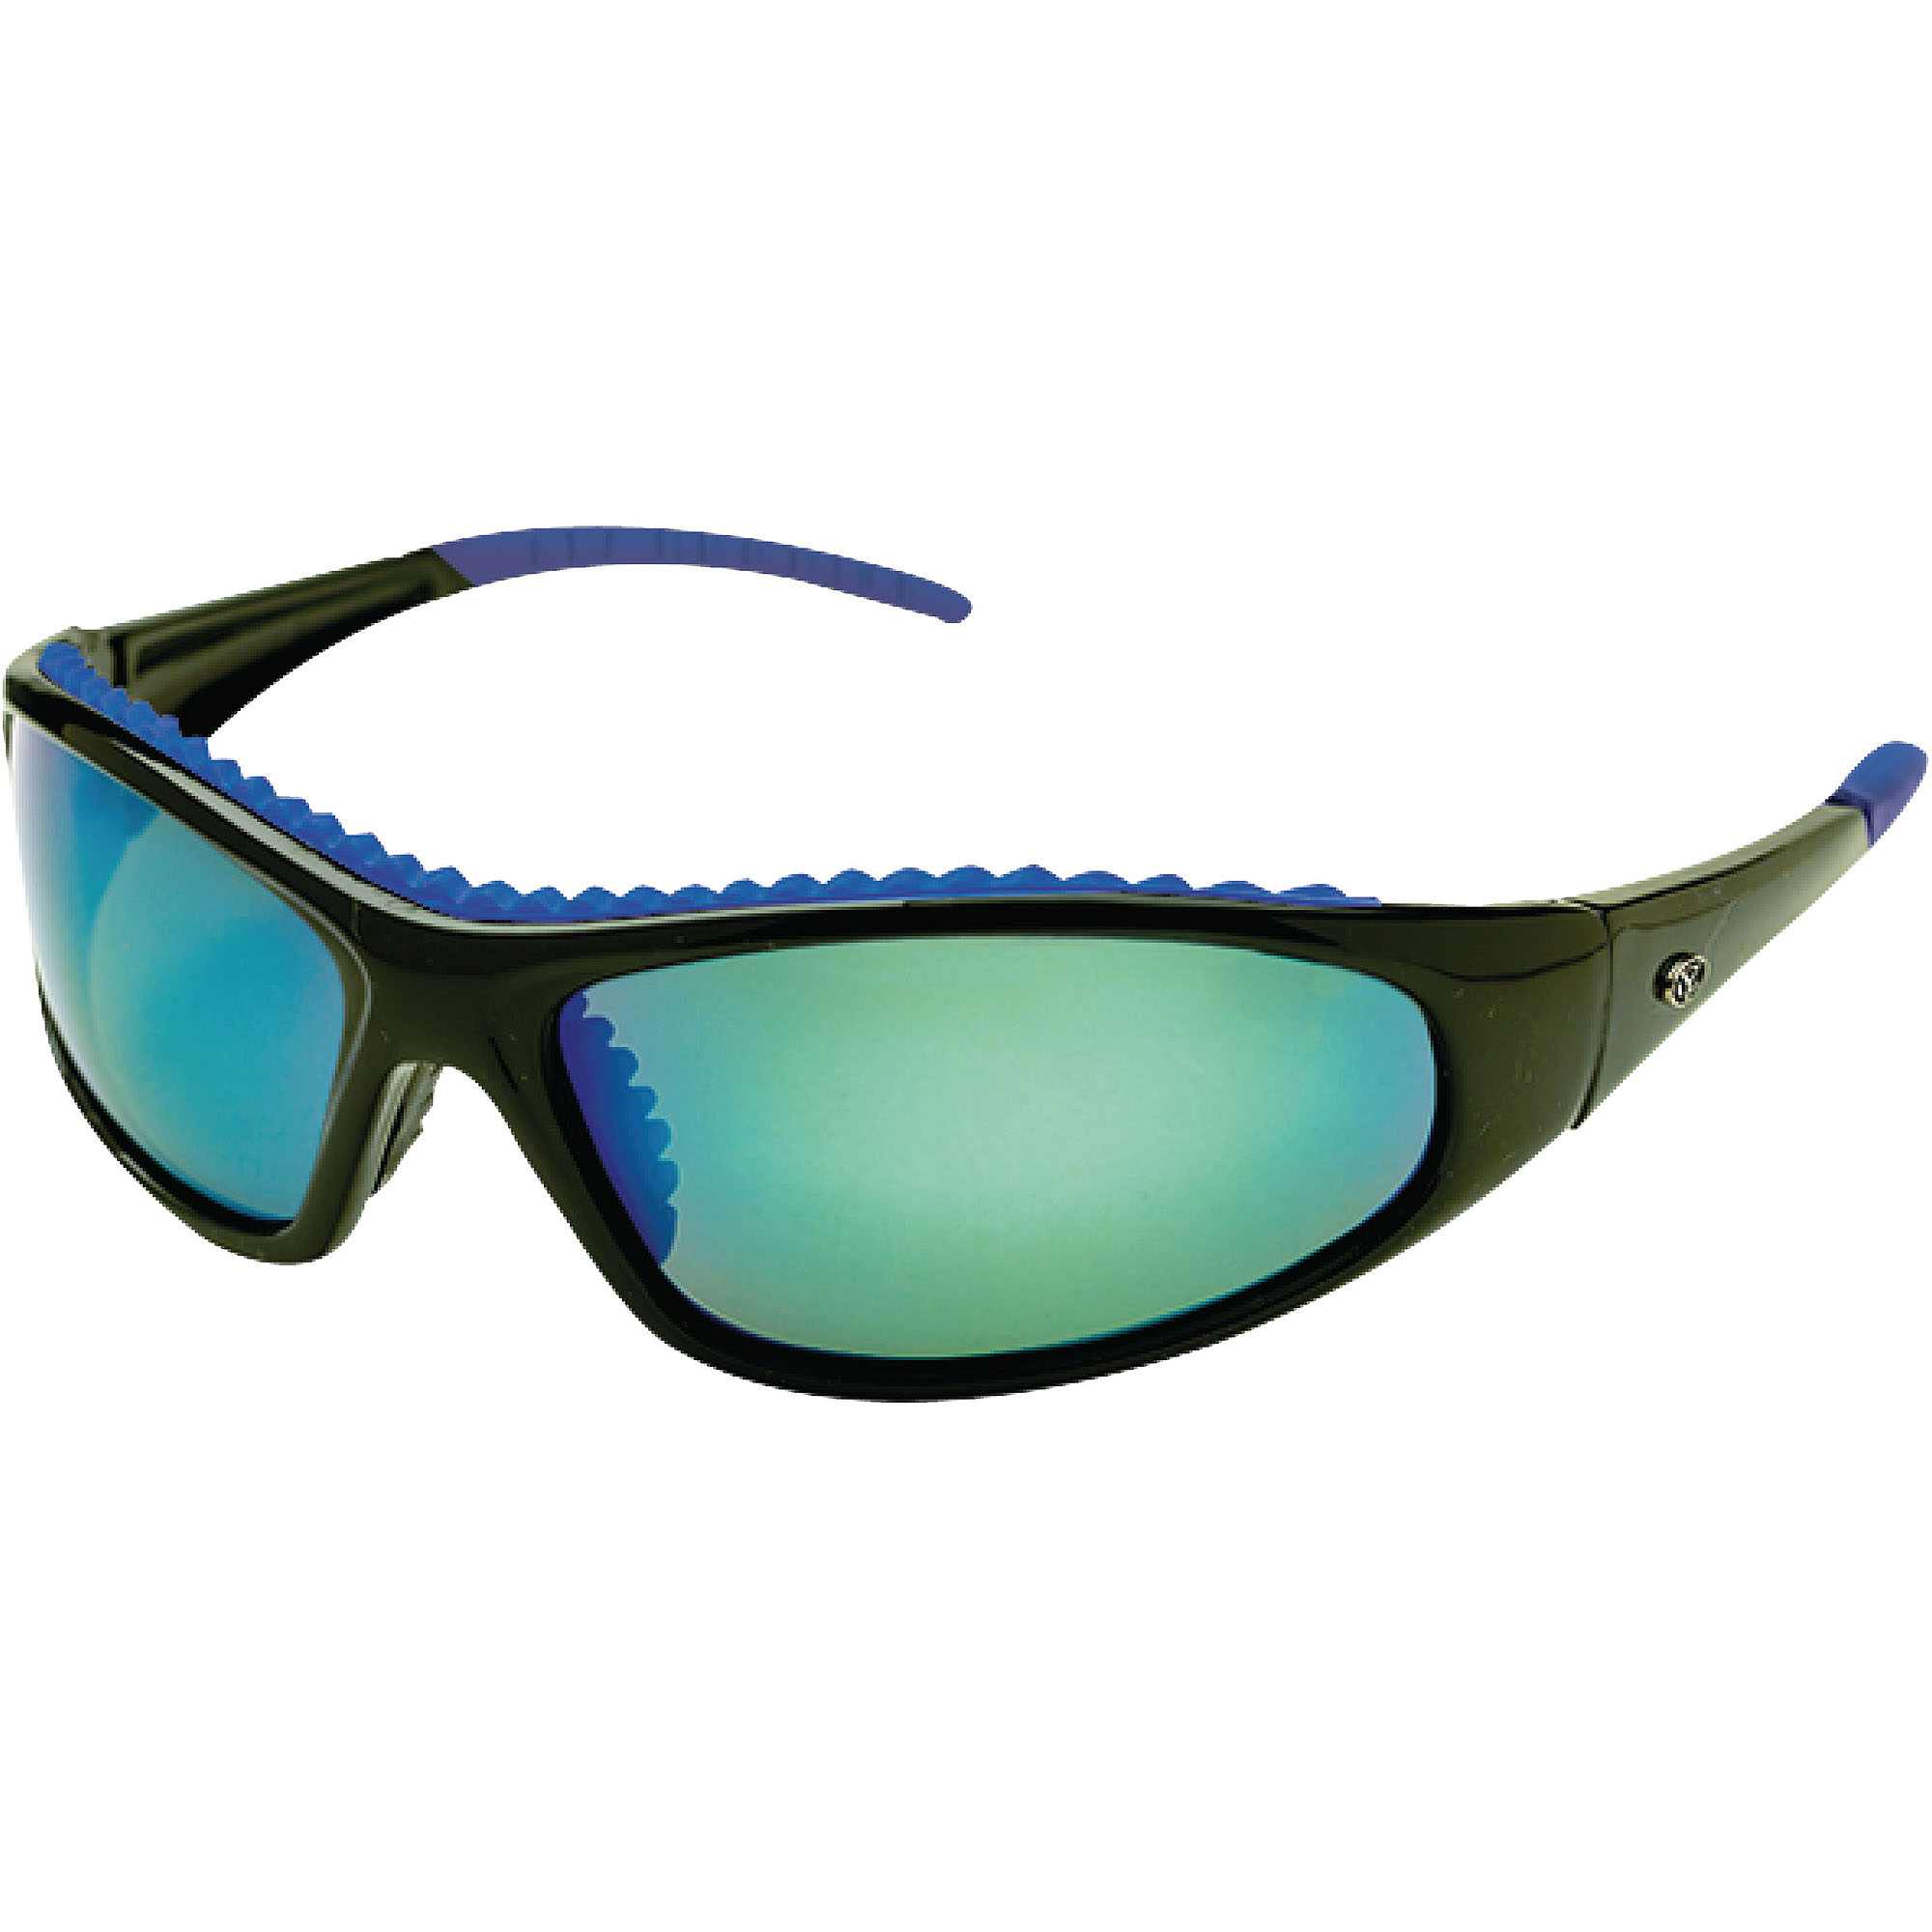 Yachter's Choice Wahoo Sunglasses with Blue Mirror Polarized Lenses